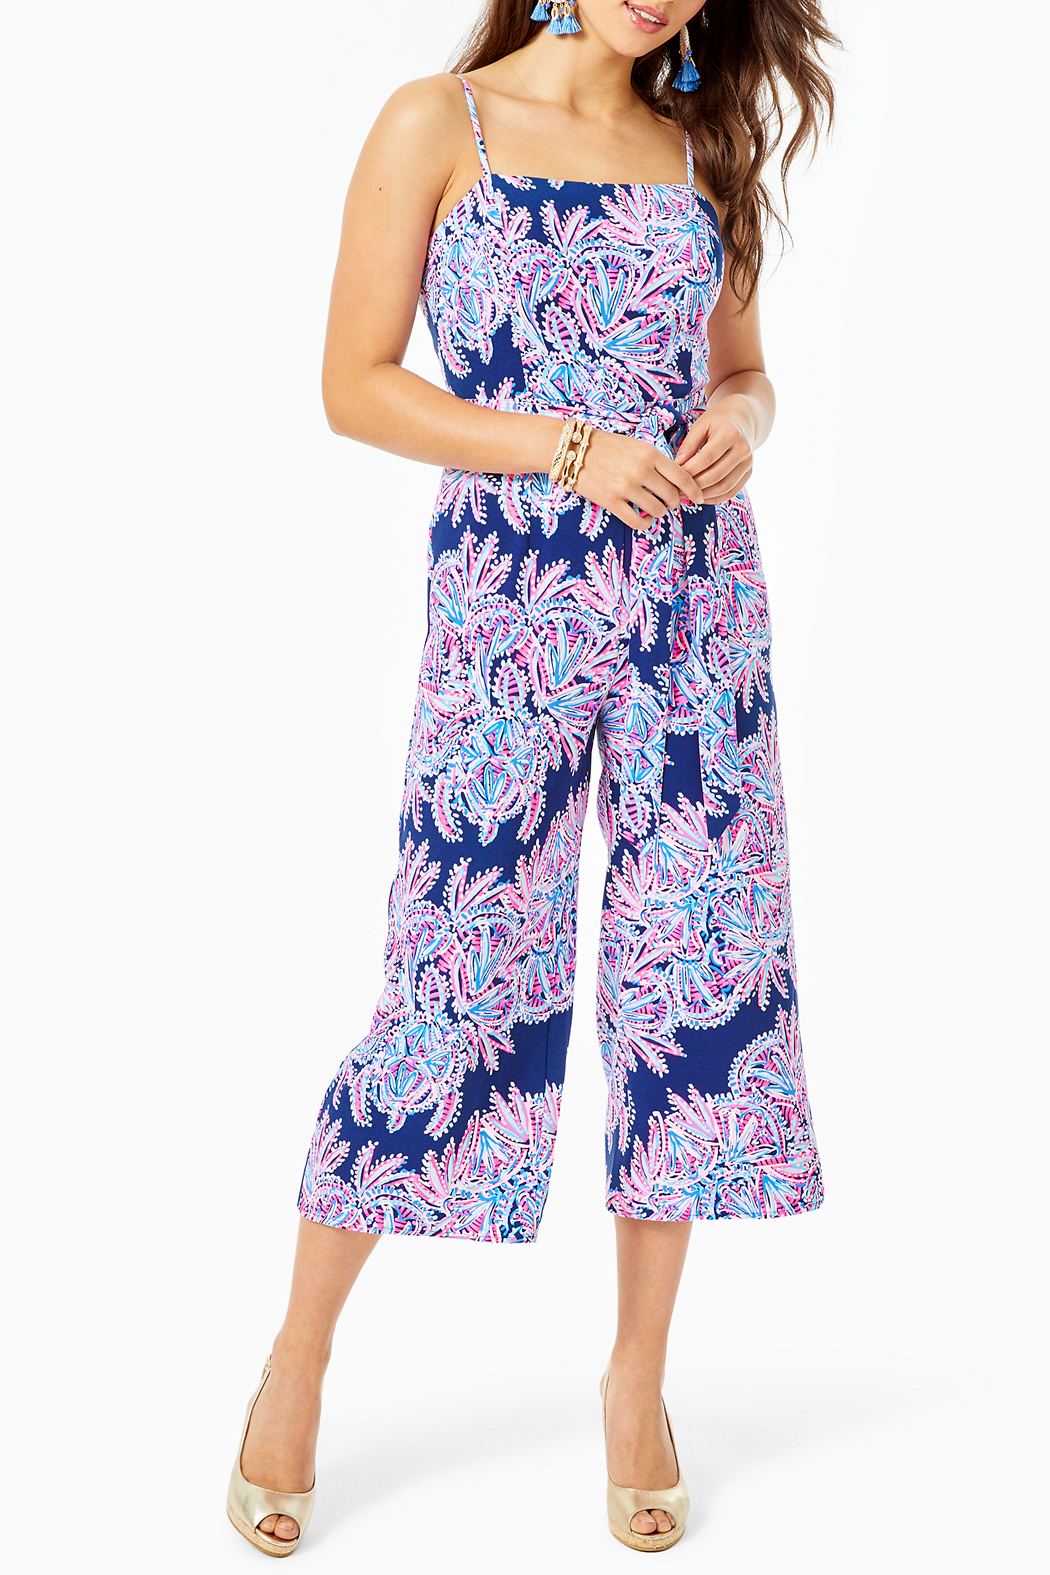 Lilly Pulitzer Sandra Jumpsuit - Main Image